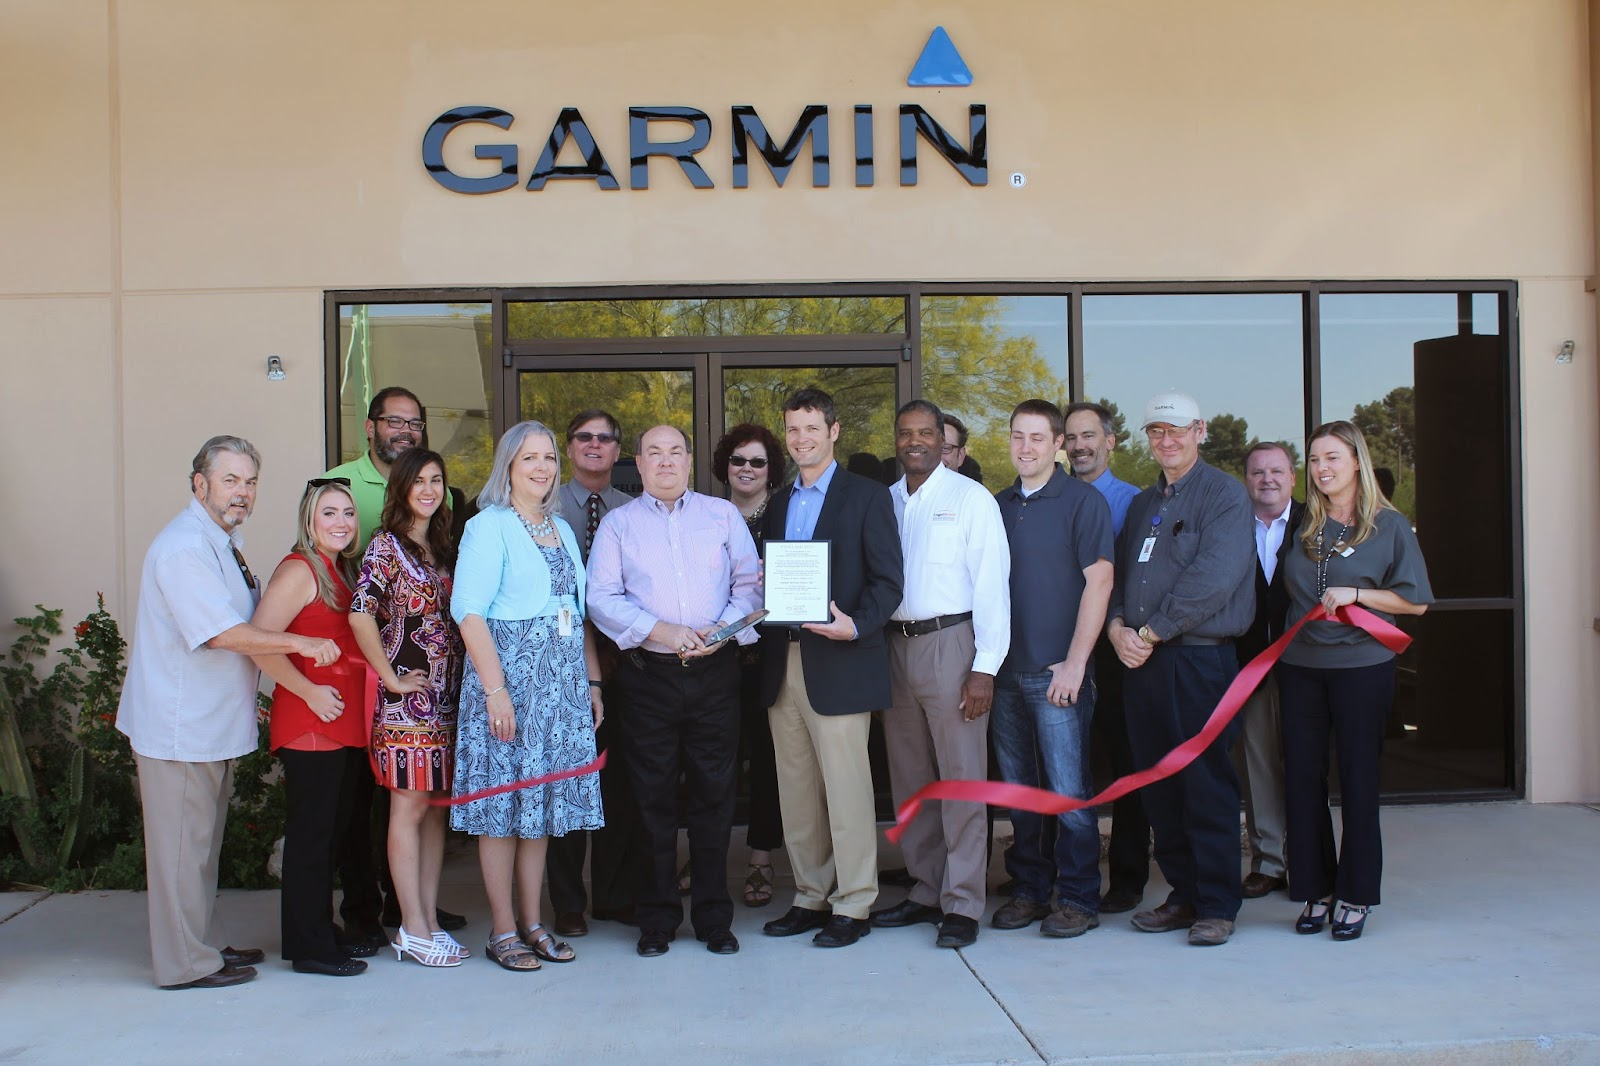 Garmin International, Inc. is excited to announce the completion of a new contact center. The call center is located next door to Garmin's Tucson Engineering Design facility. The contact center will allow growth in both the contact center department, and the engineering department. Including both the contact center and engineering, they'll be growing from 30 associates to well over 100!  Garmin International, Inc. 1705 S. Research Loop, 85710 (520) 290-6000